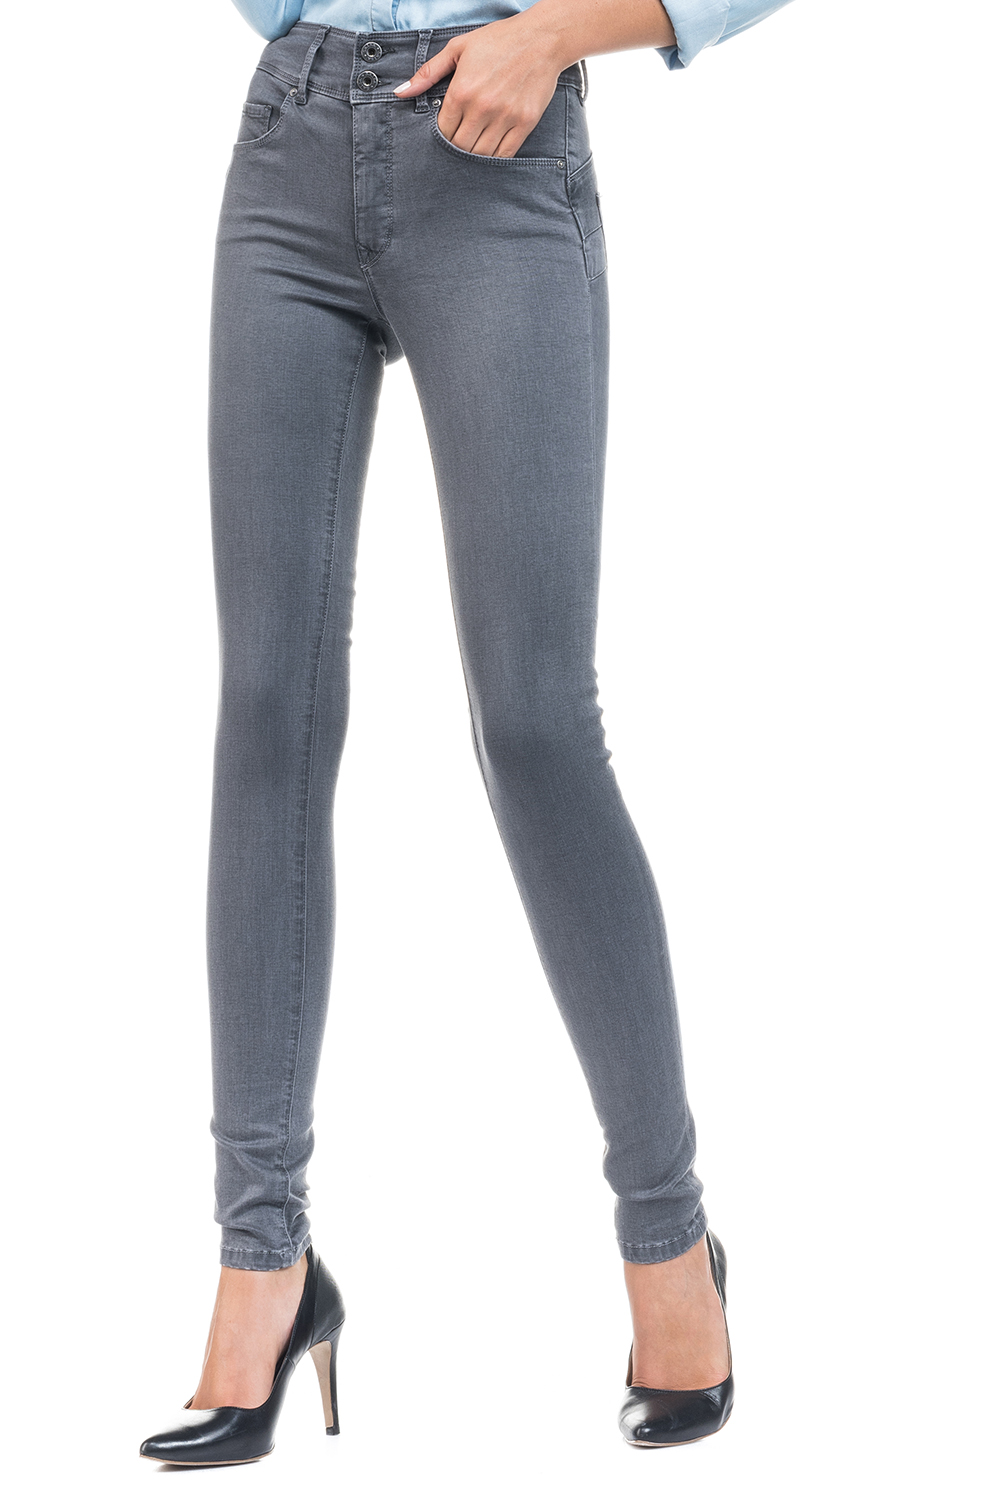 official store look for official Salsa Push In Secret Skinny Jeans - Grey - Stick and Ribbon